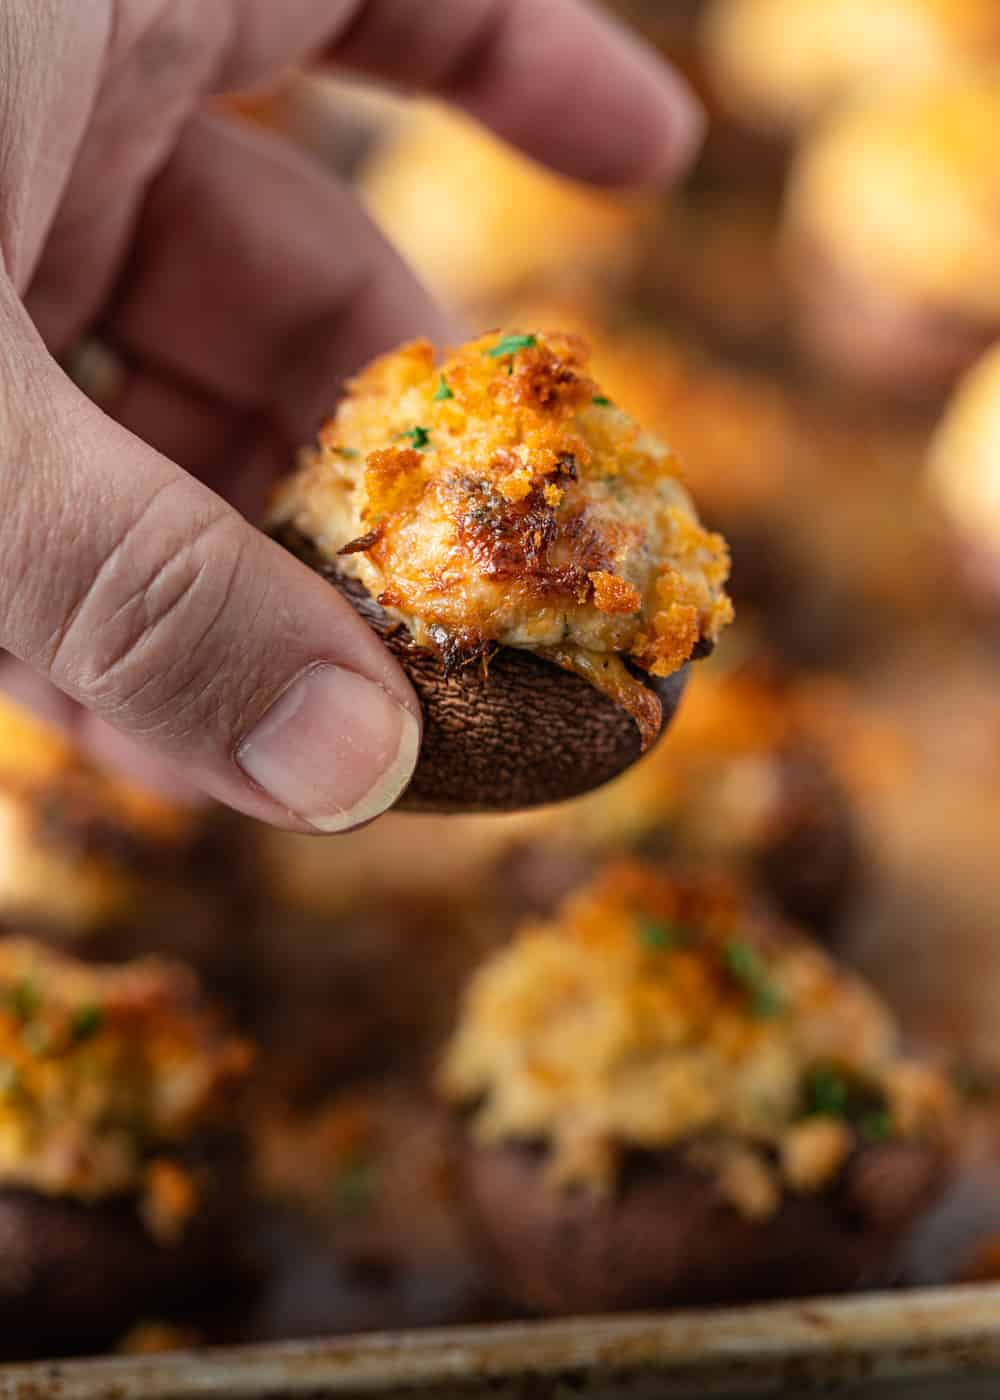 close up of Stuffed Mushrooms in hand